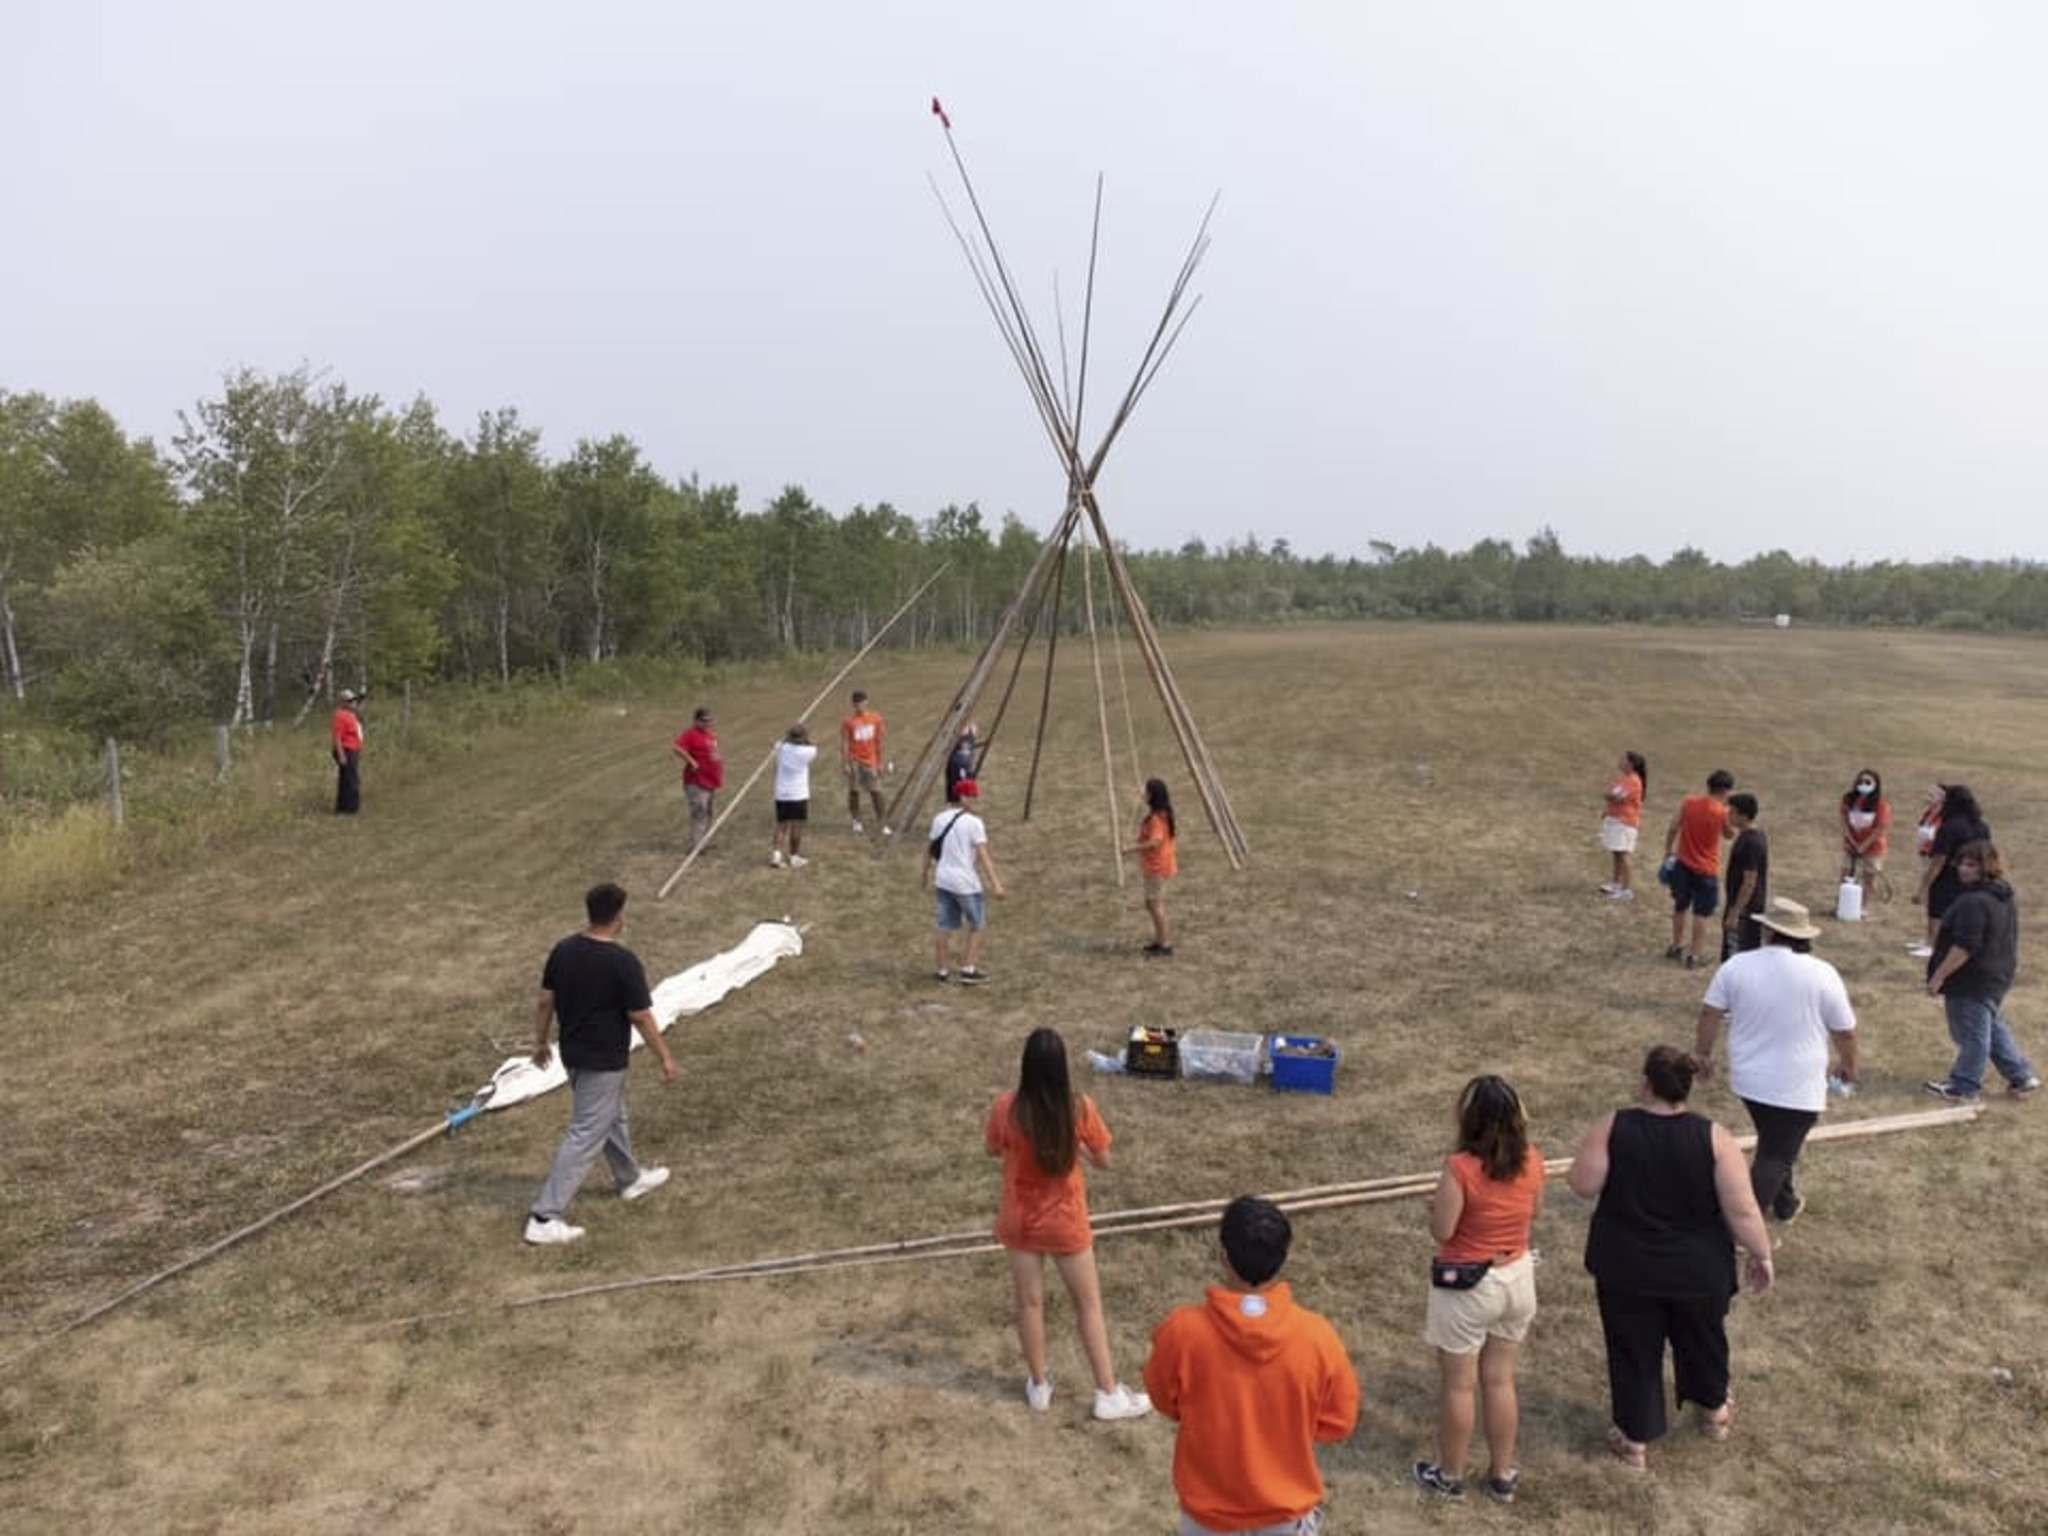 Anishiative campers built teepees together on the first day. (Supplied)</p>